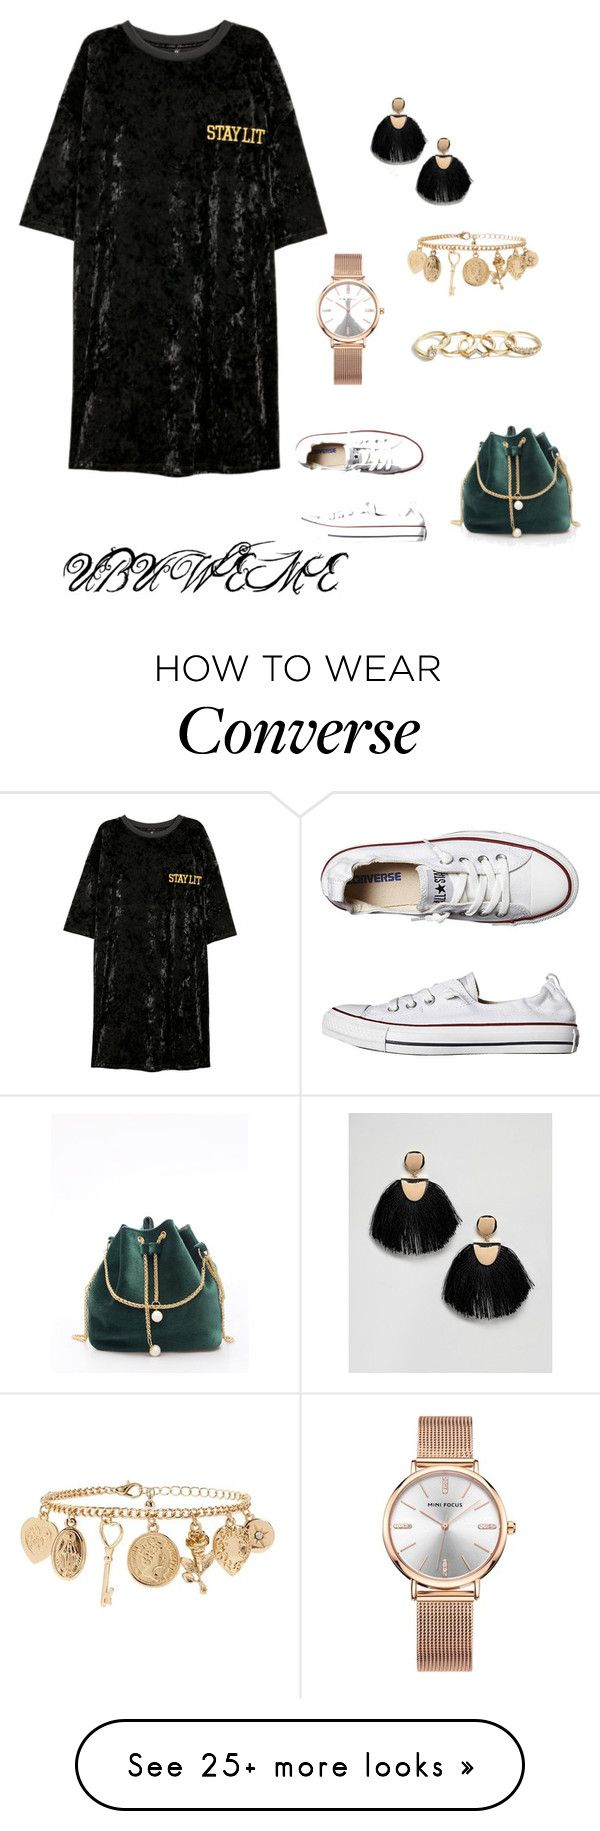 """VELVET TSHIRT DRESS"" by mchangwe on Polyvore featuring Converse, GUESS, Forever 21 and ASOS"